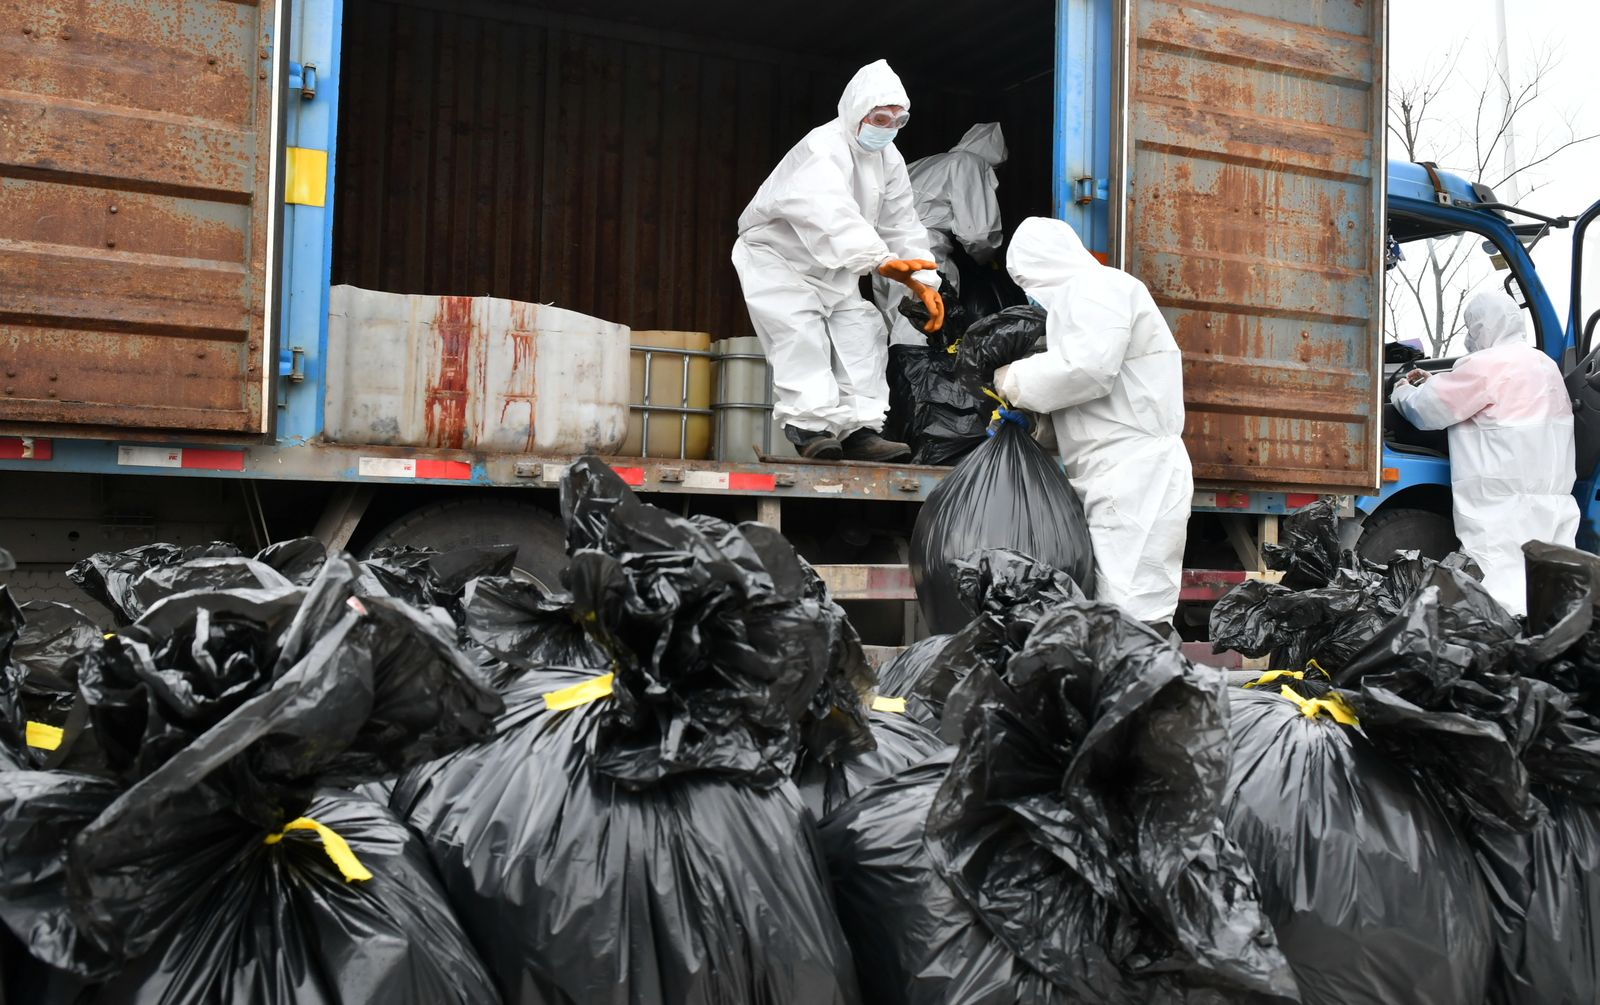 Workers in protective suits load household garbage to a truck at a home quarantine medical observation site in Shaoxing